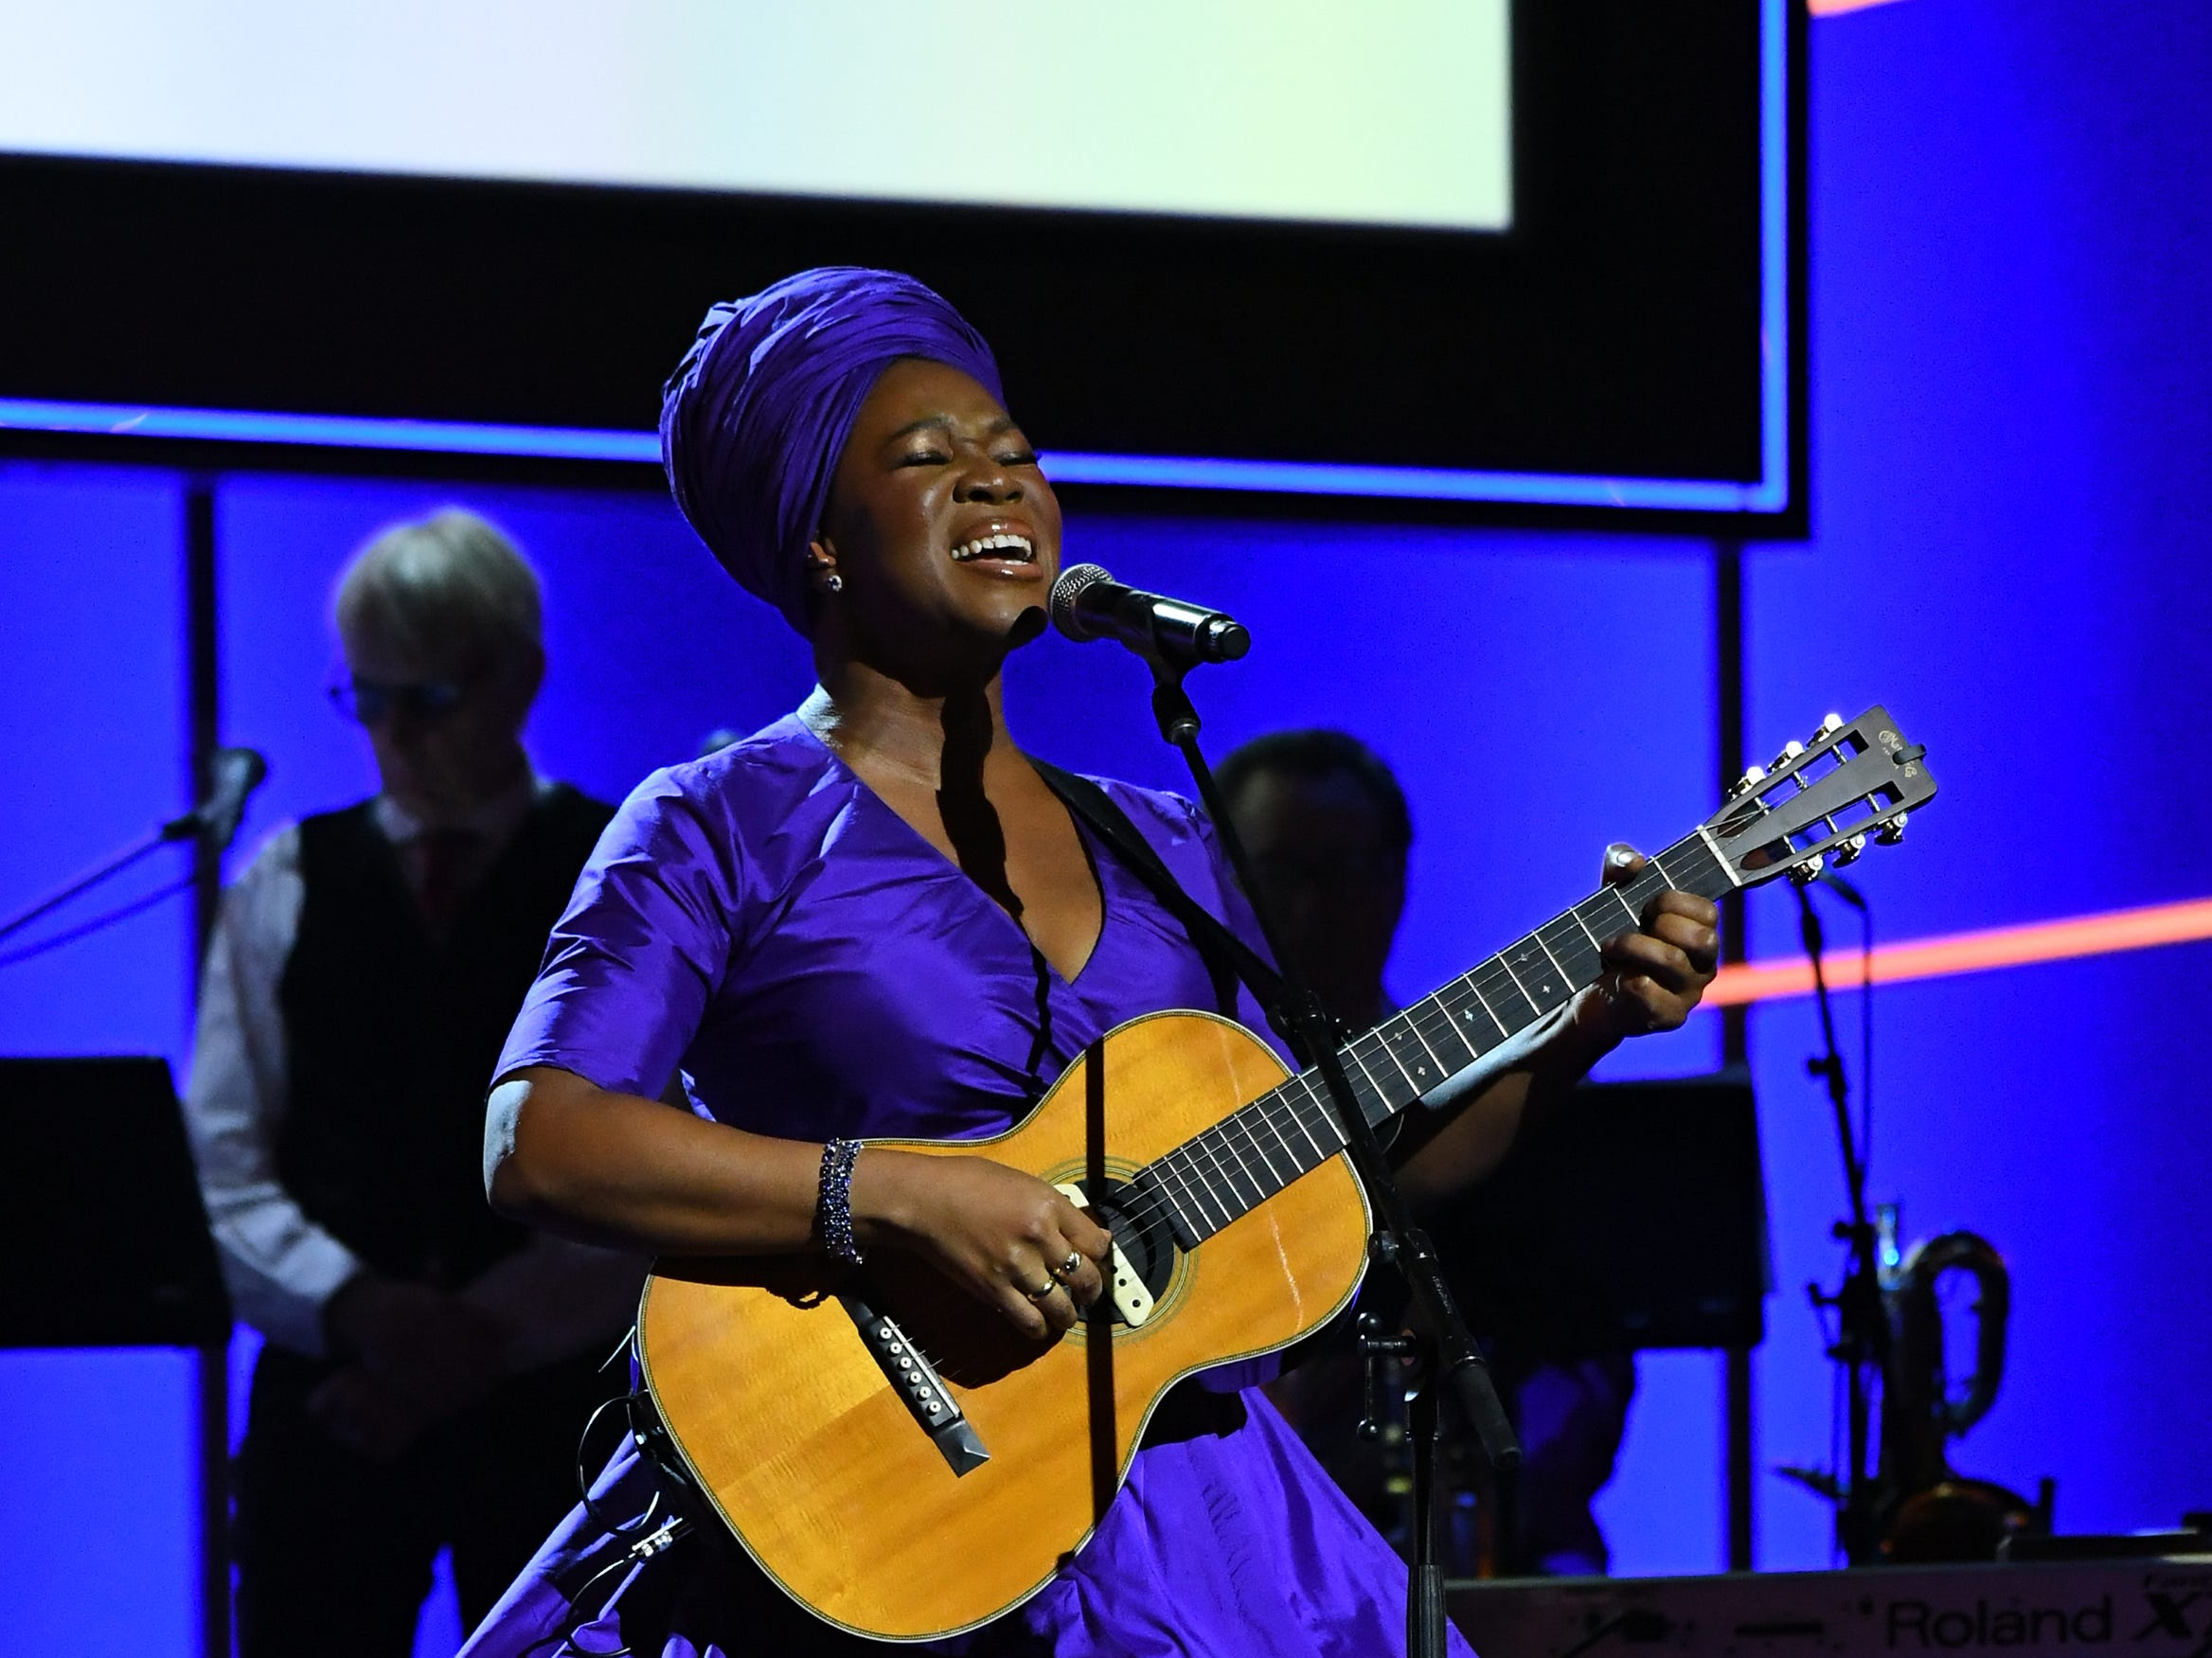 "Jan 28, 2018; New York, NY, USA;  India.Arie performs ""I Am Light"" during the Grammy Awards Premiere Ceremony at The Theater at Madison Square Garden. Mandatory Credit: Robert Deutsch-USA TODAY (Via OlyDrop)"